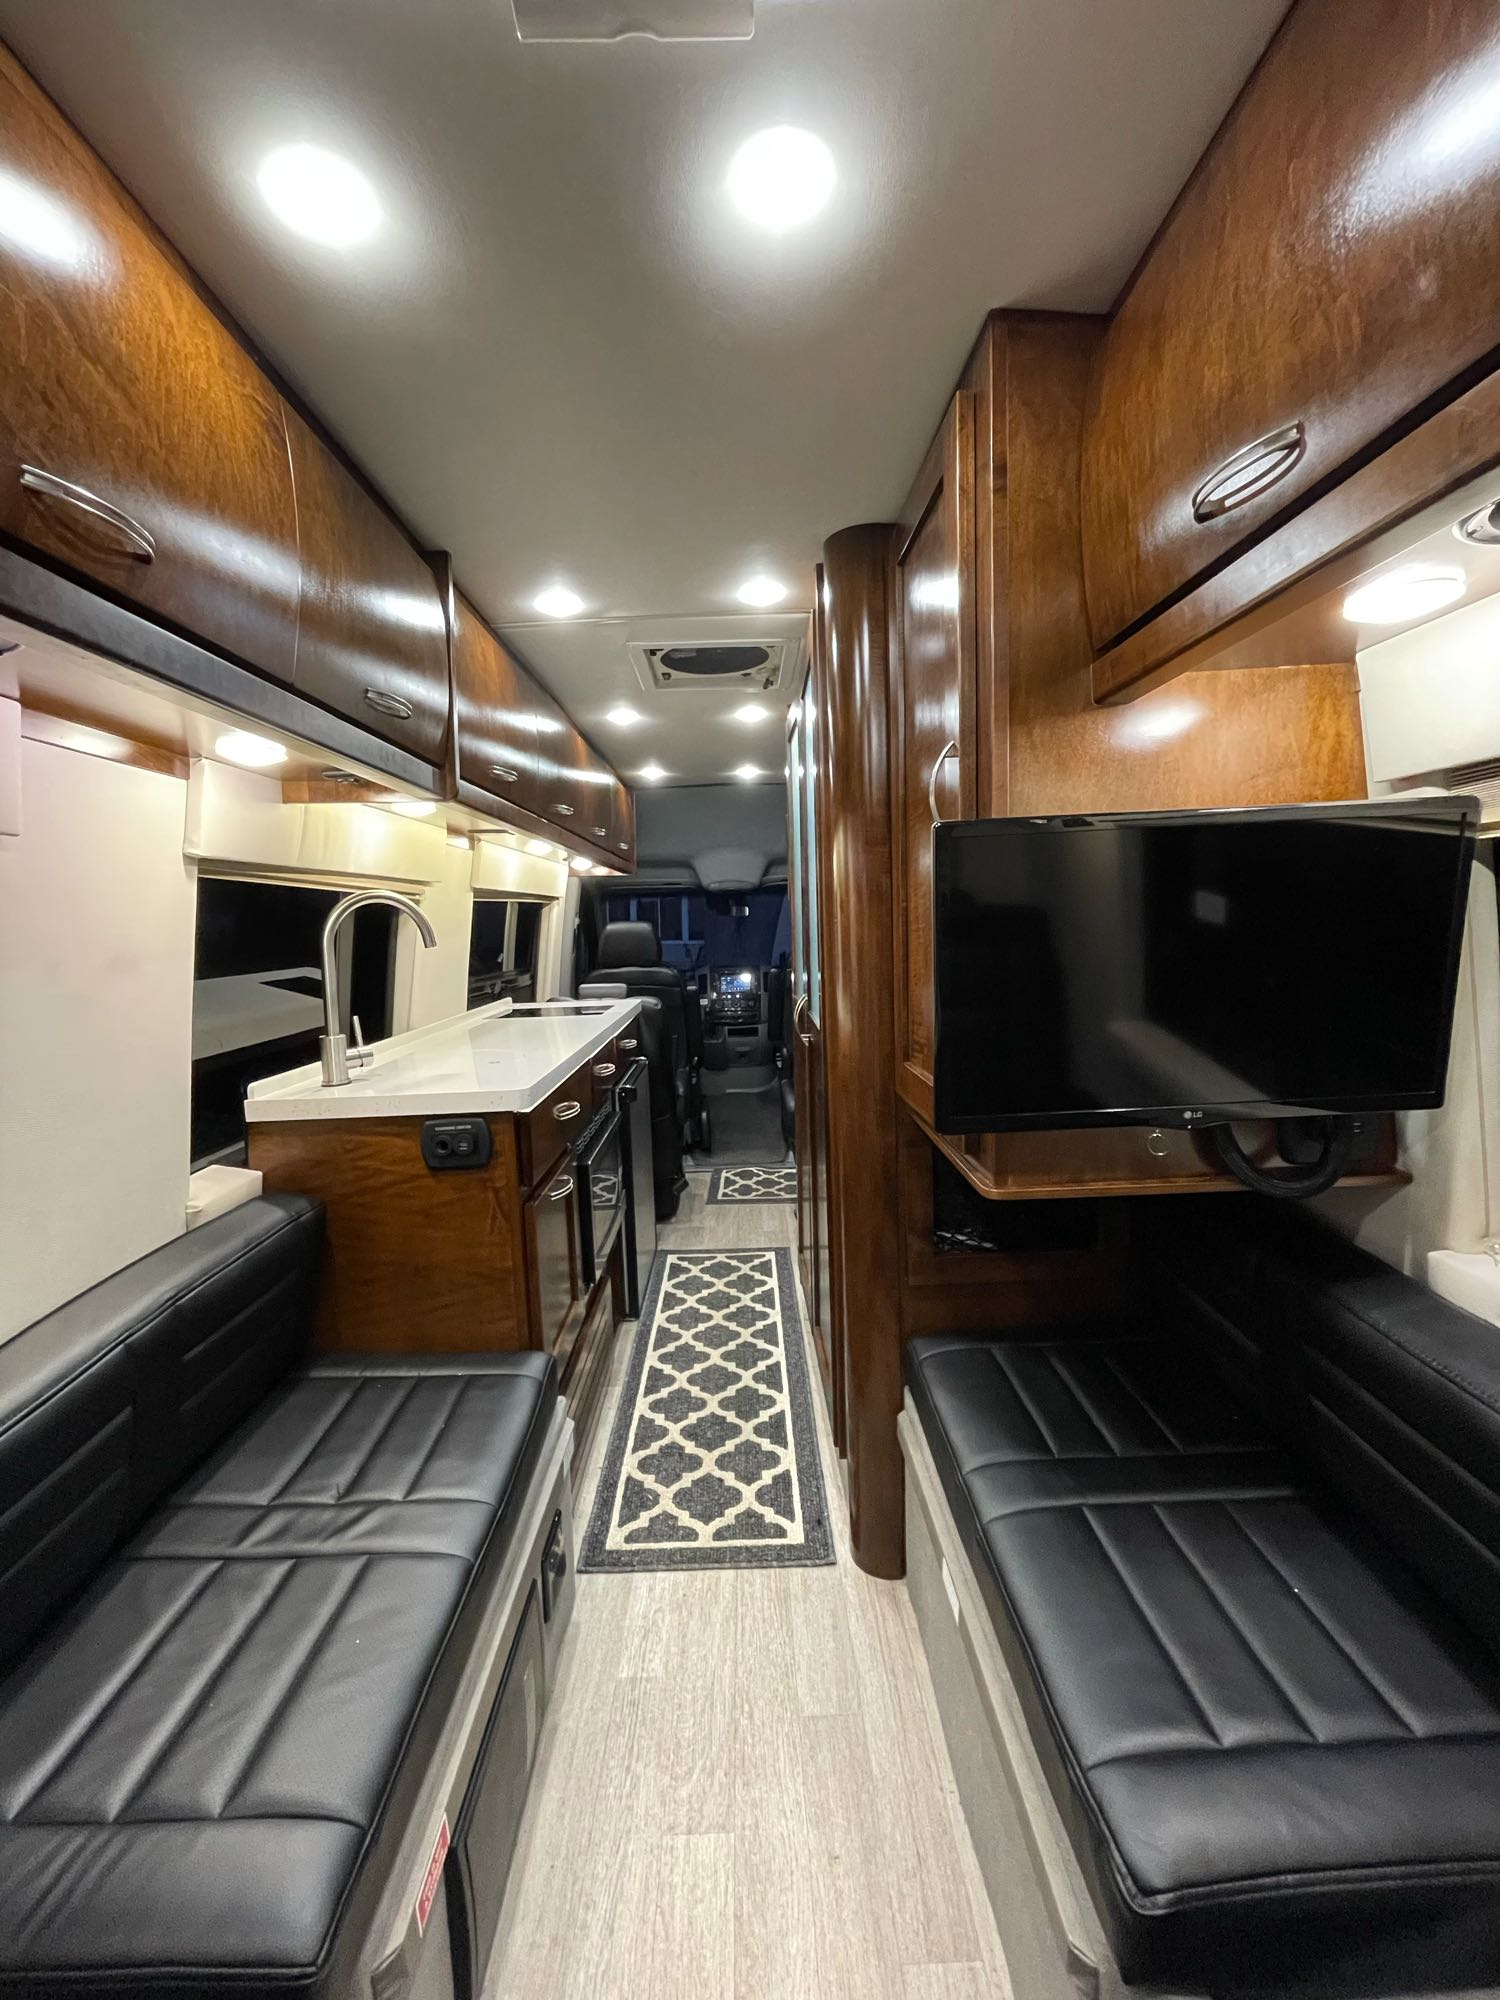 View from rear bench seat/bed looking towards the front.. Coachmen Galleria 24Q 2018